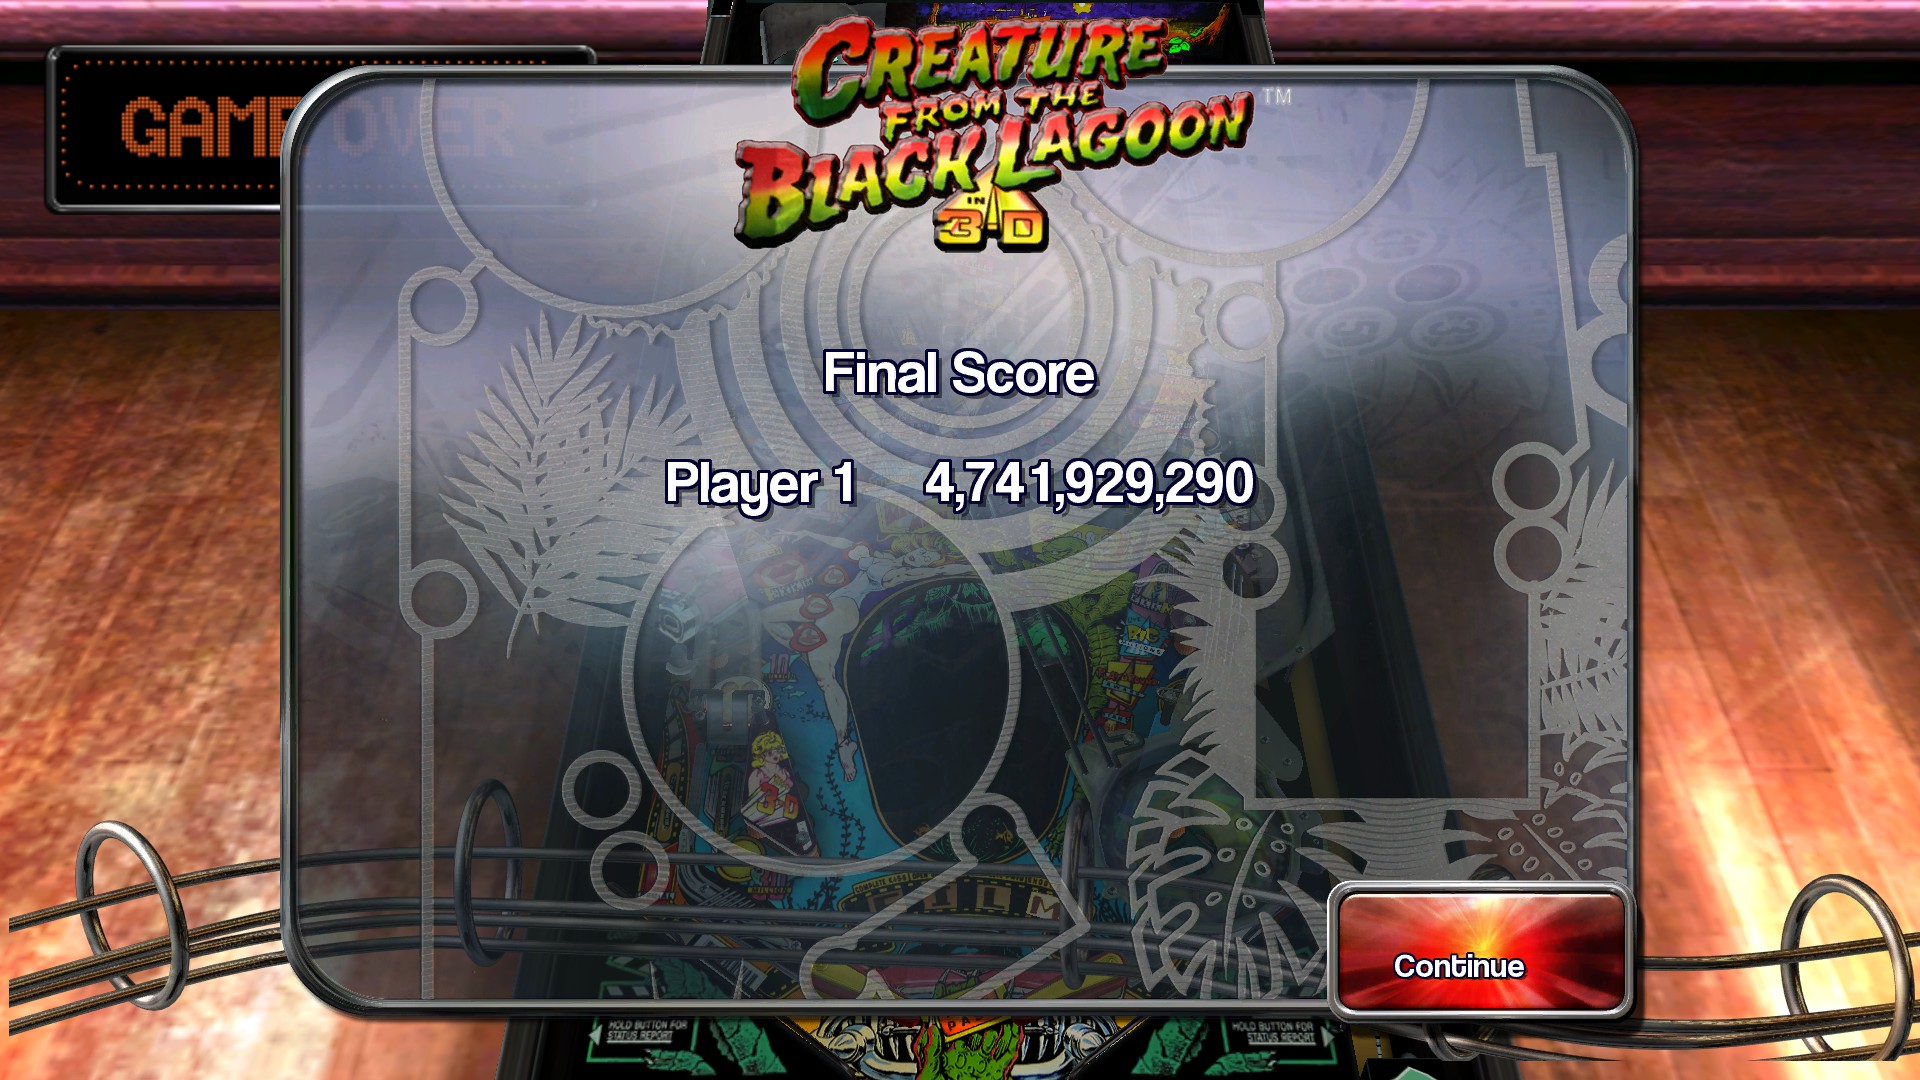 TheTrickster: Pinball Arcade: Creature From the Black Lagoon (PC) 4,741,929,290 points on 2016-03-12 03:34:49